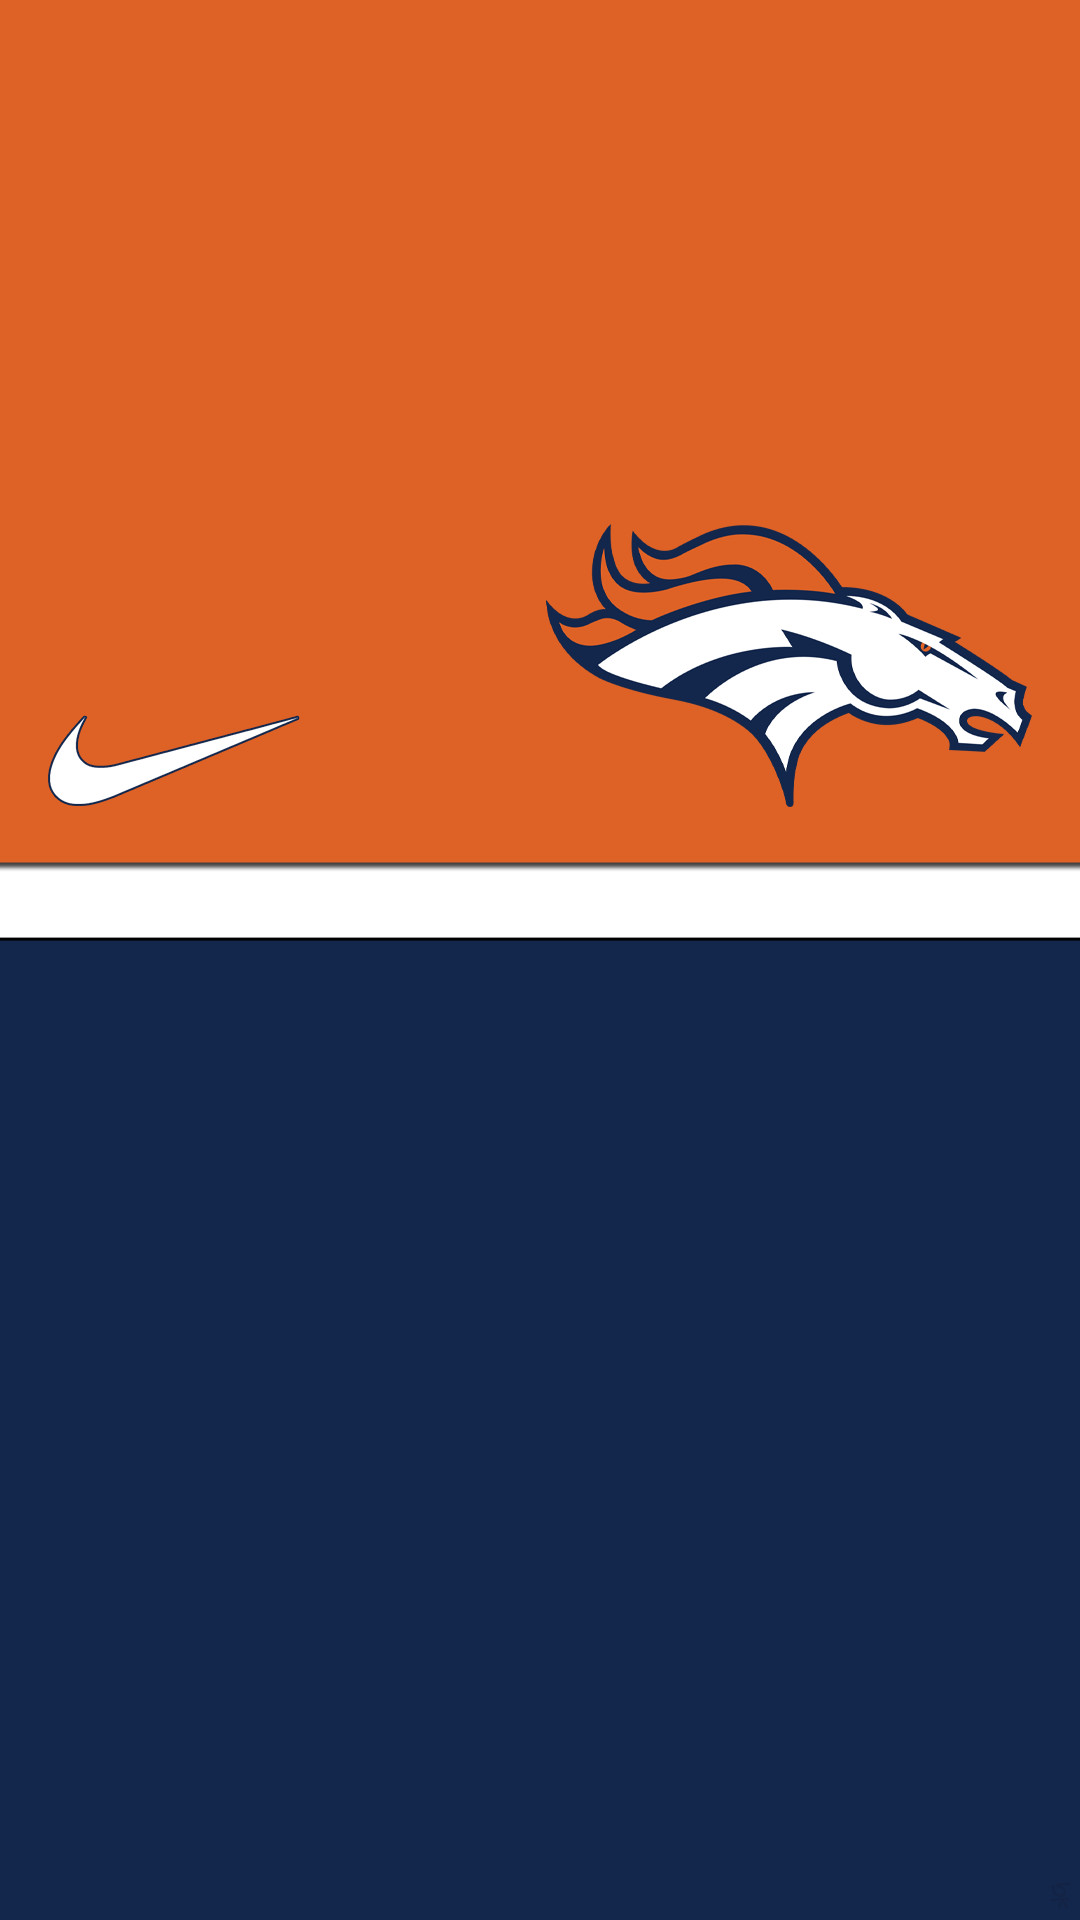 Denver Broncos Backgrounds – Wallpaper Cave | All Wallpapers | Pinterest |  Wallpaper